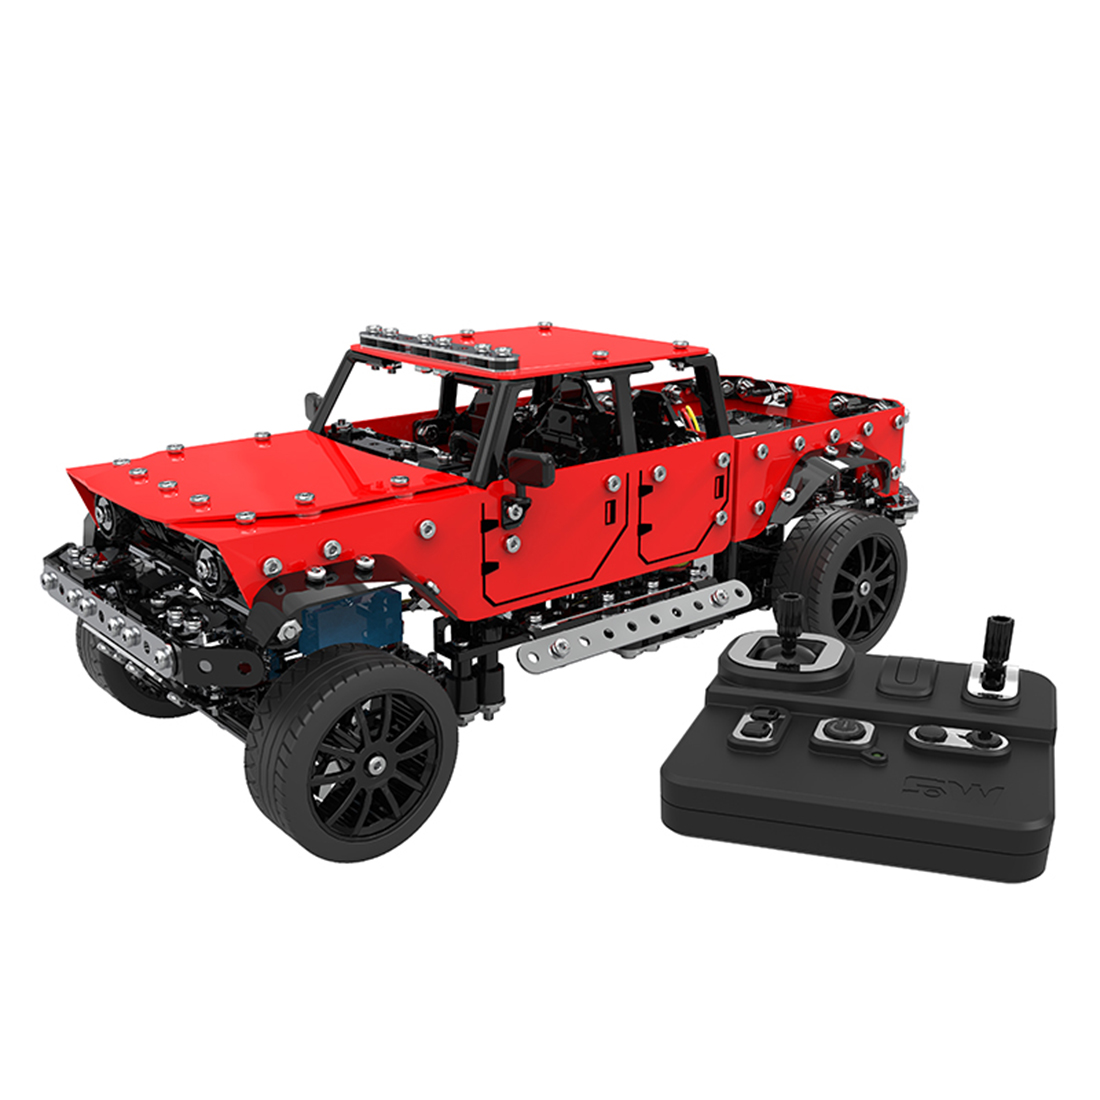 Surwish  1:16 Stainless Steel RC Off-Road Vehicle Building Block DIY Small Particle Construction Model Toy Christmas Gifts